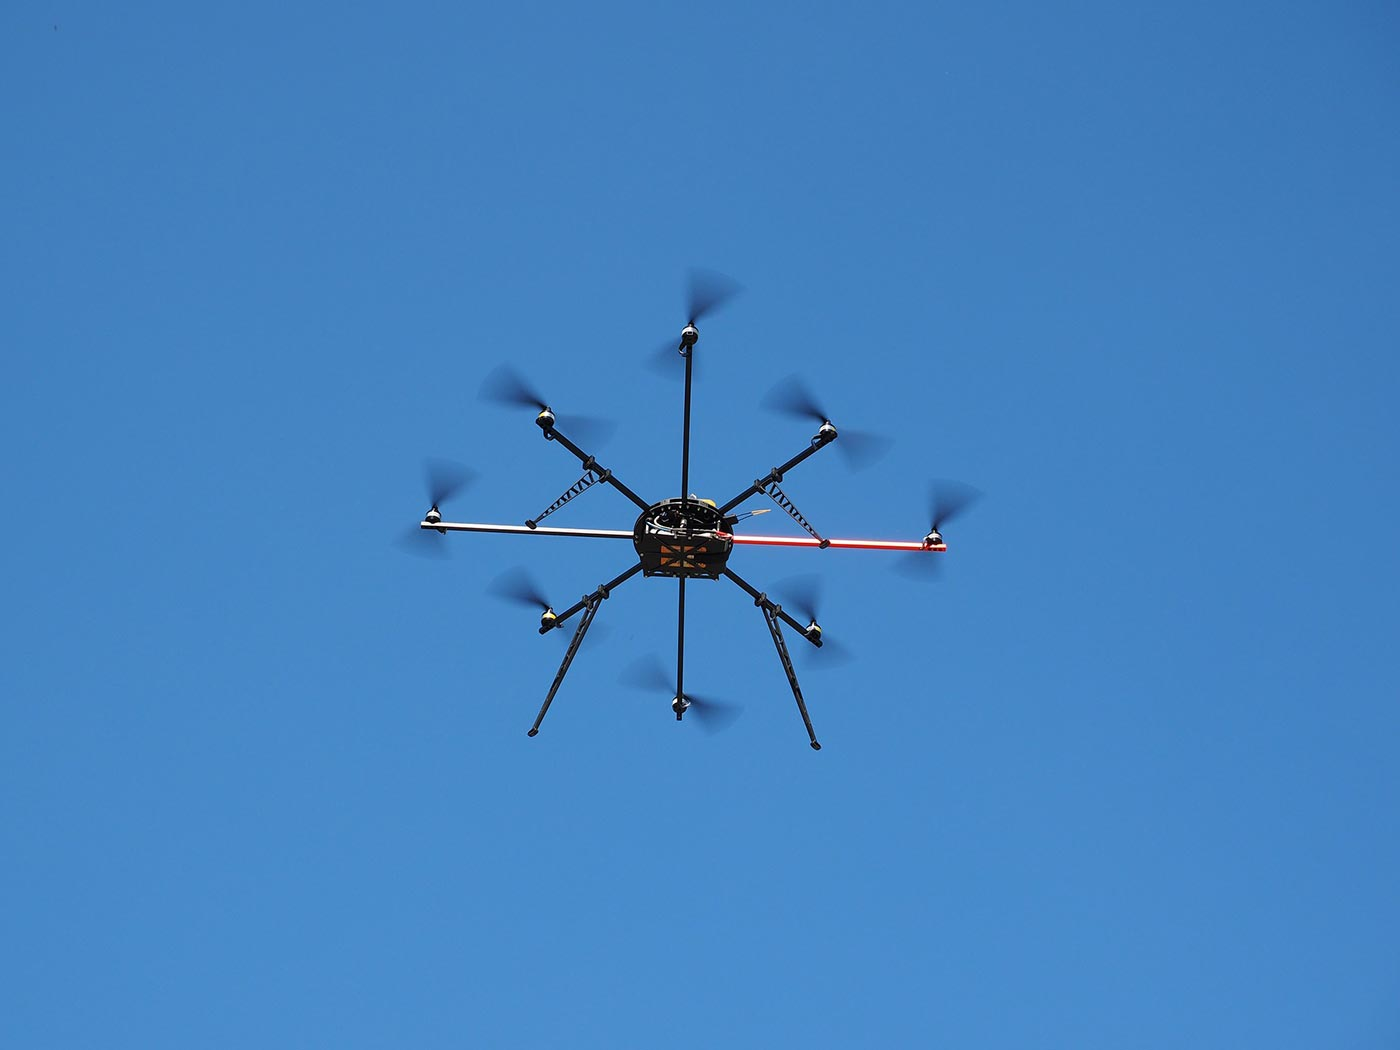 Drone against a blue sky